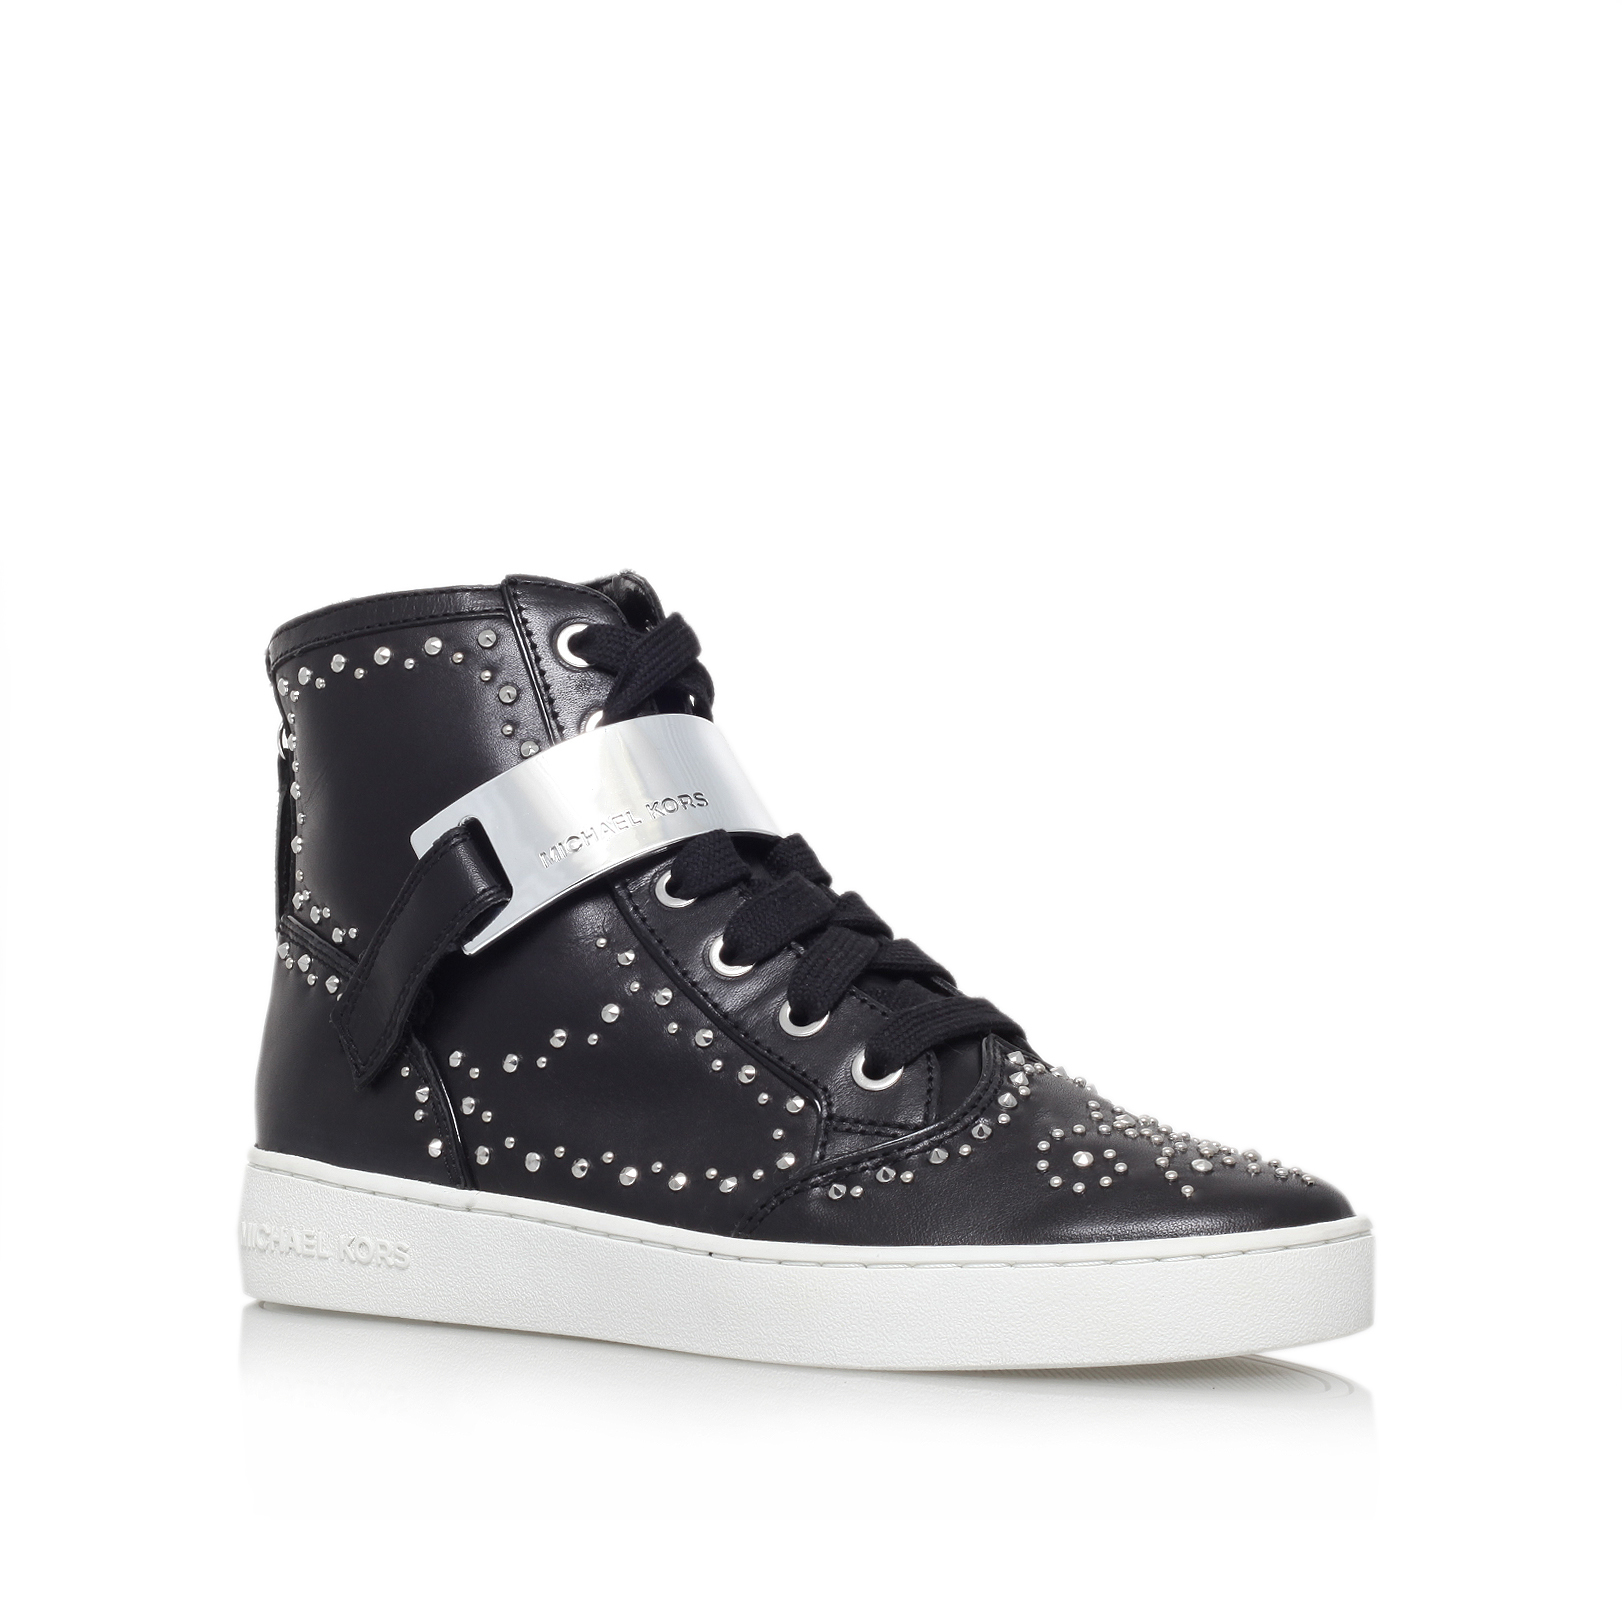 SOFIE HIGH TOP